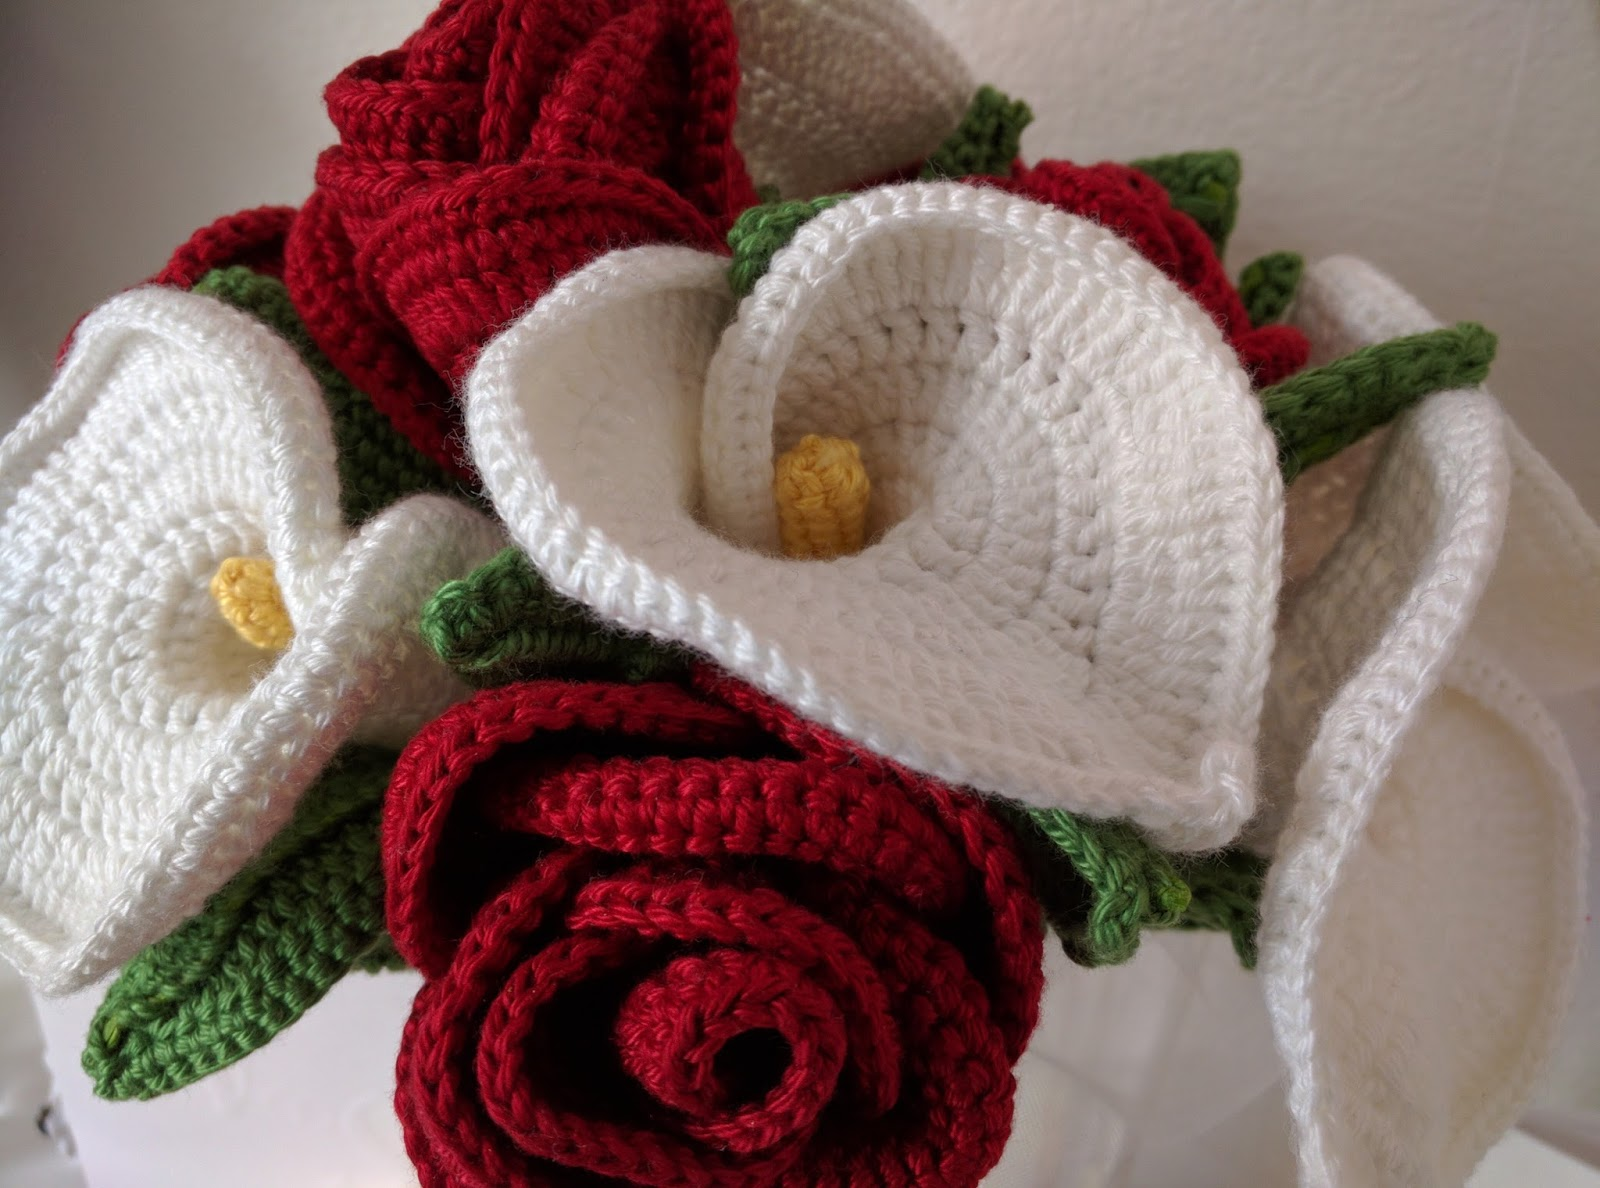 Run sengi run bridal bouquet my main solo wedding project was to crochet my bouquet and i have been thinking aboutplanning this for about a year and properly working on it for the izmirmasajfo